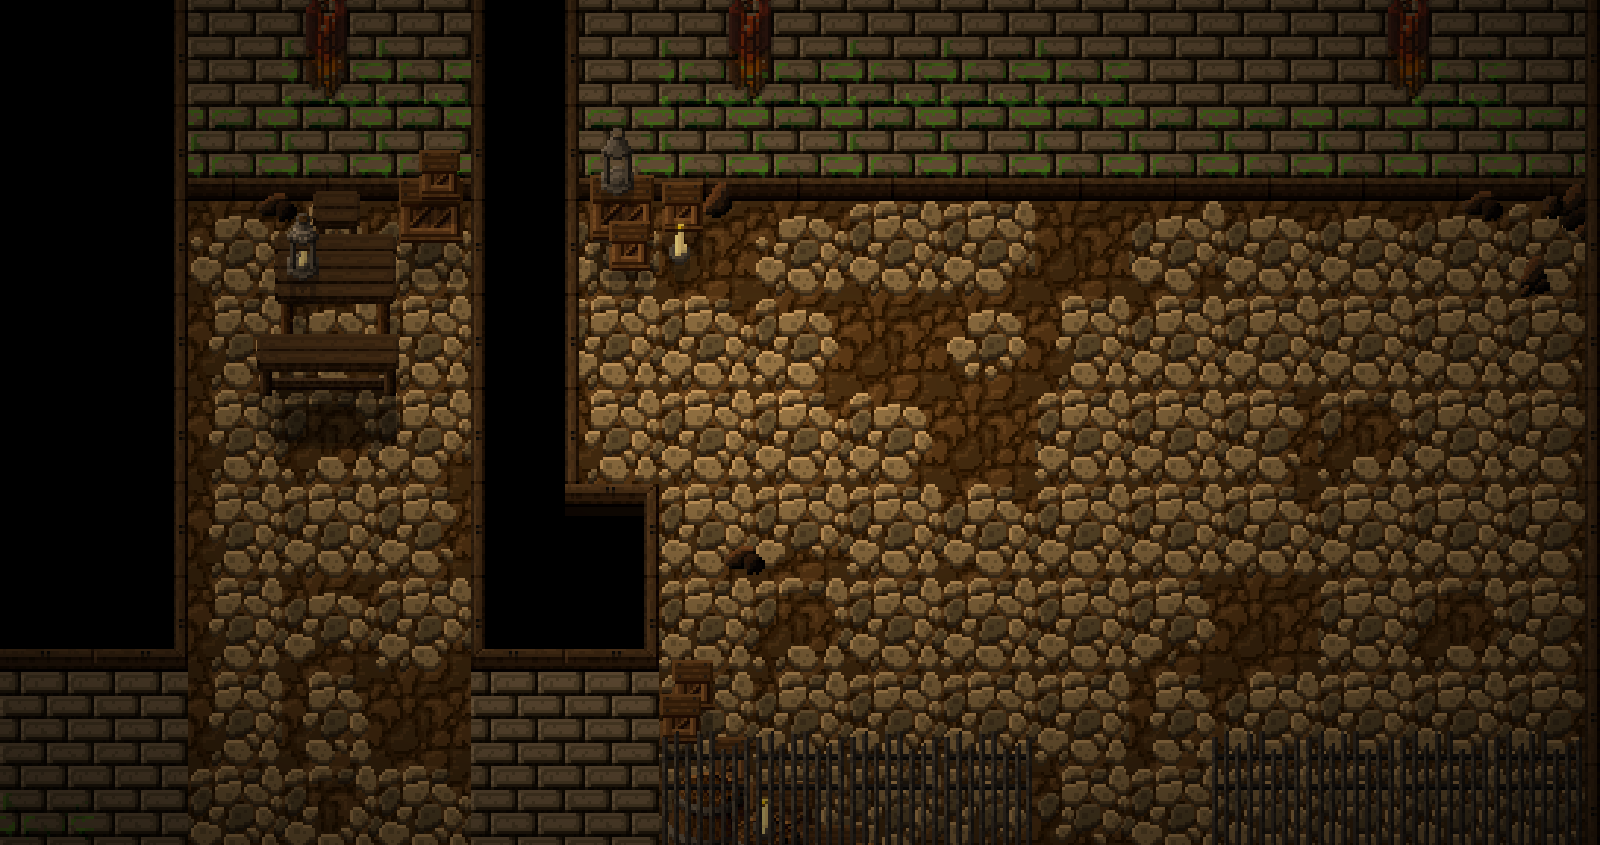 The tower's cellar, discovered from a fall...